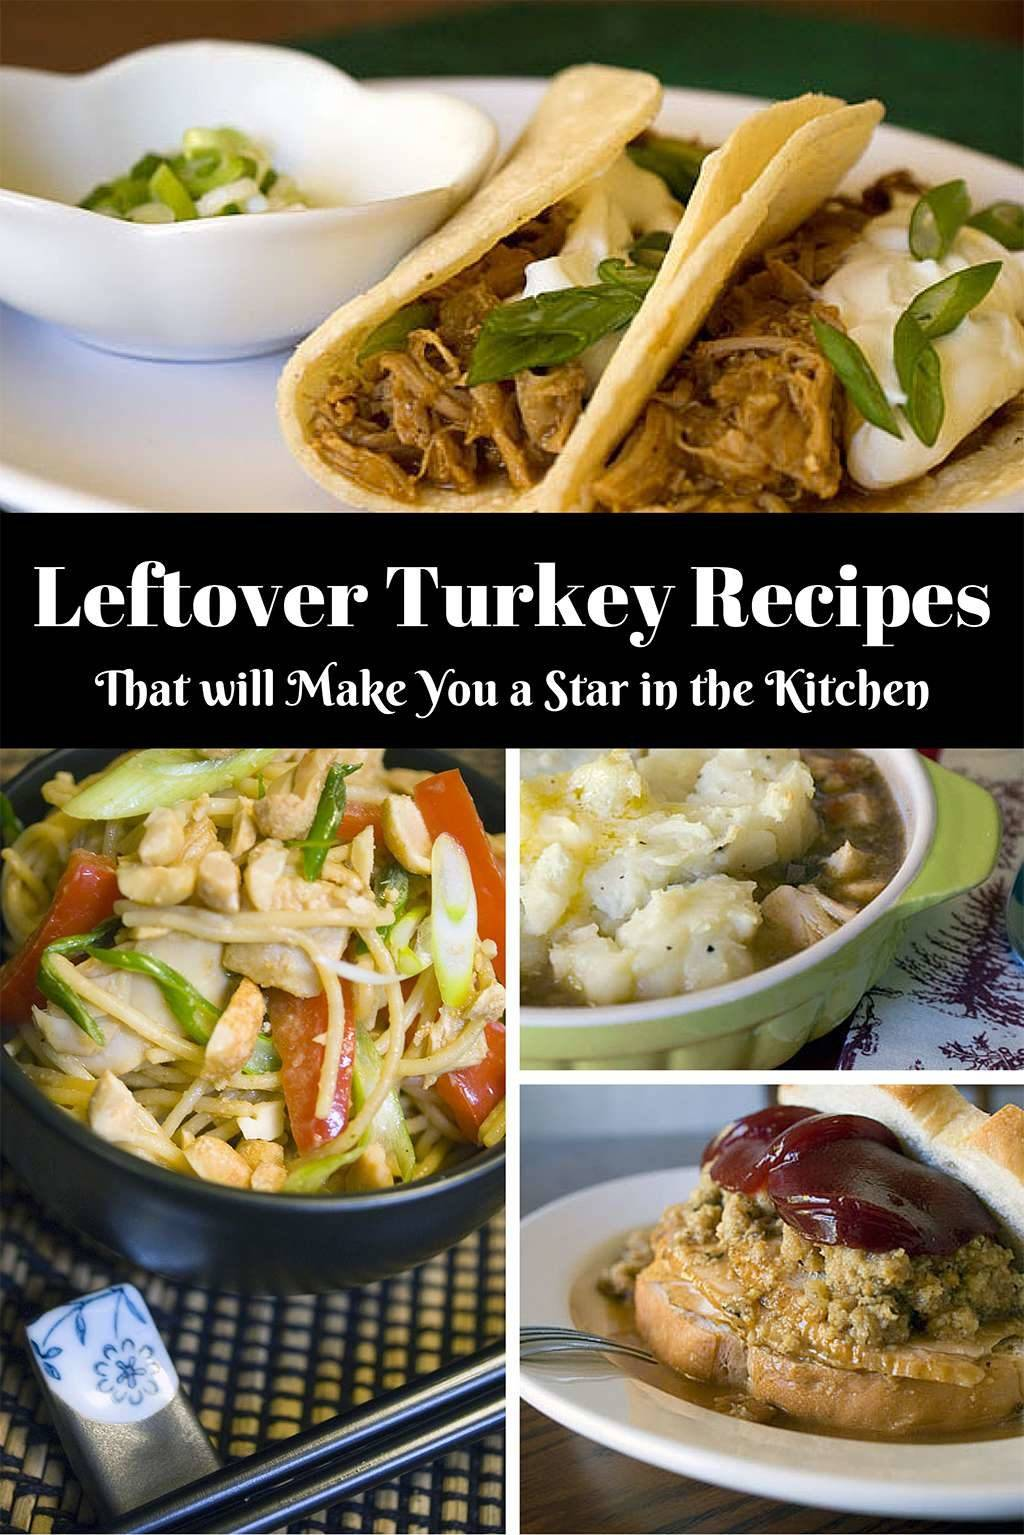 Leftover Turkey Recipes That Will Make You a Star in the Kitchen